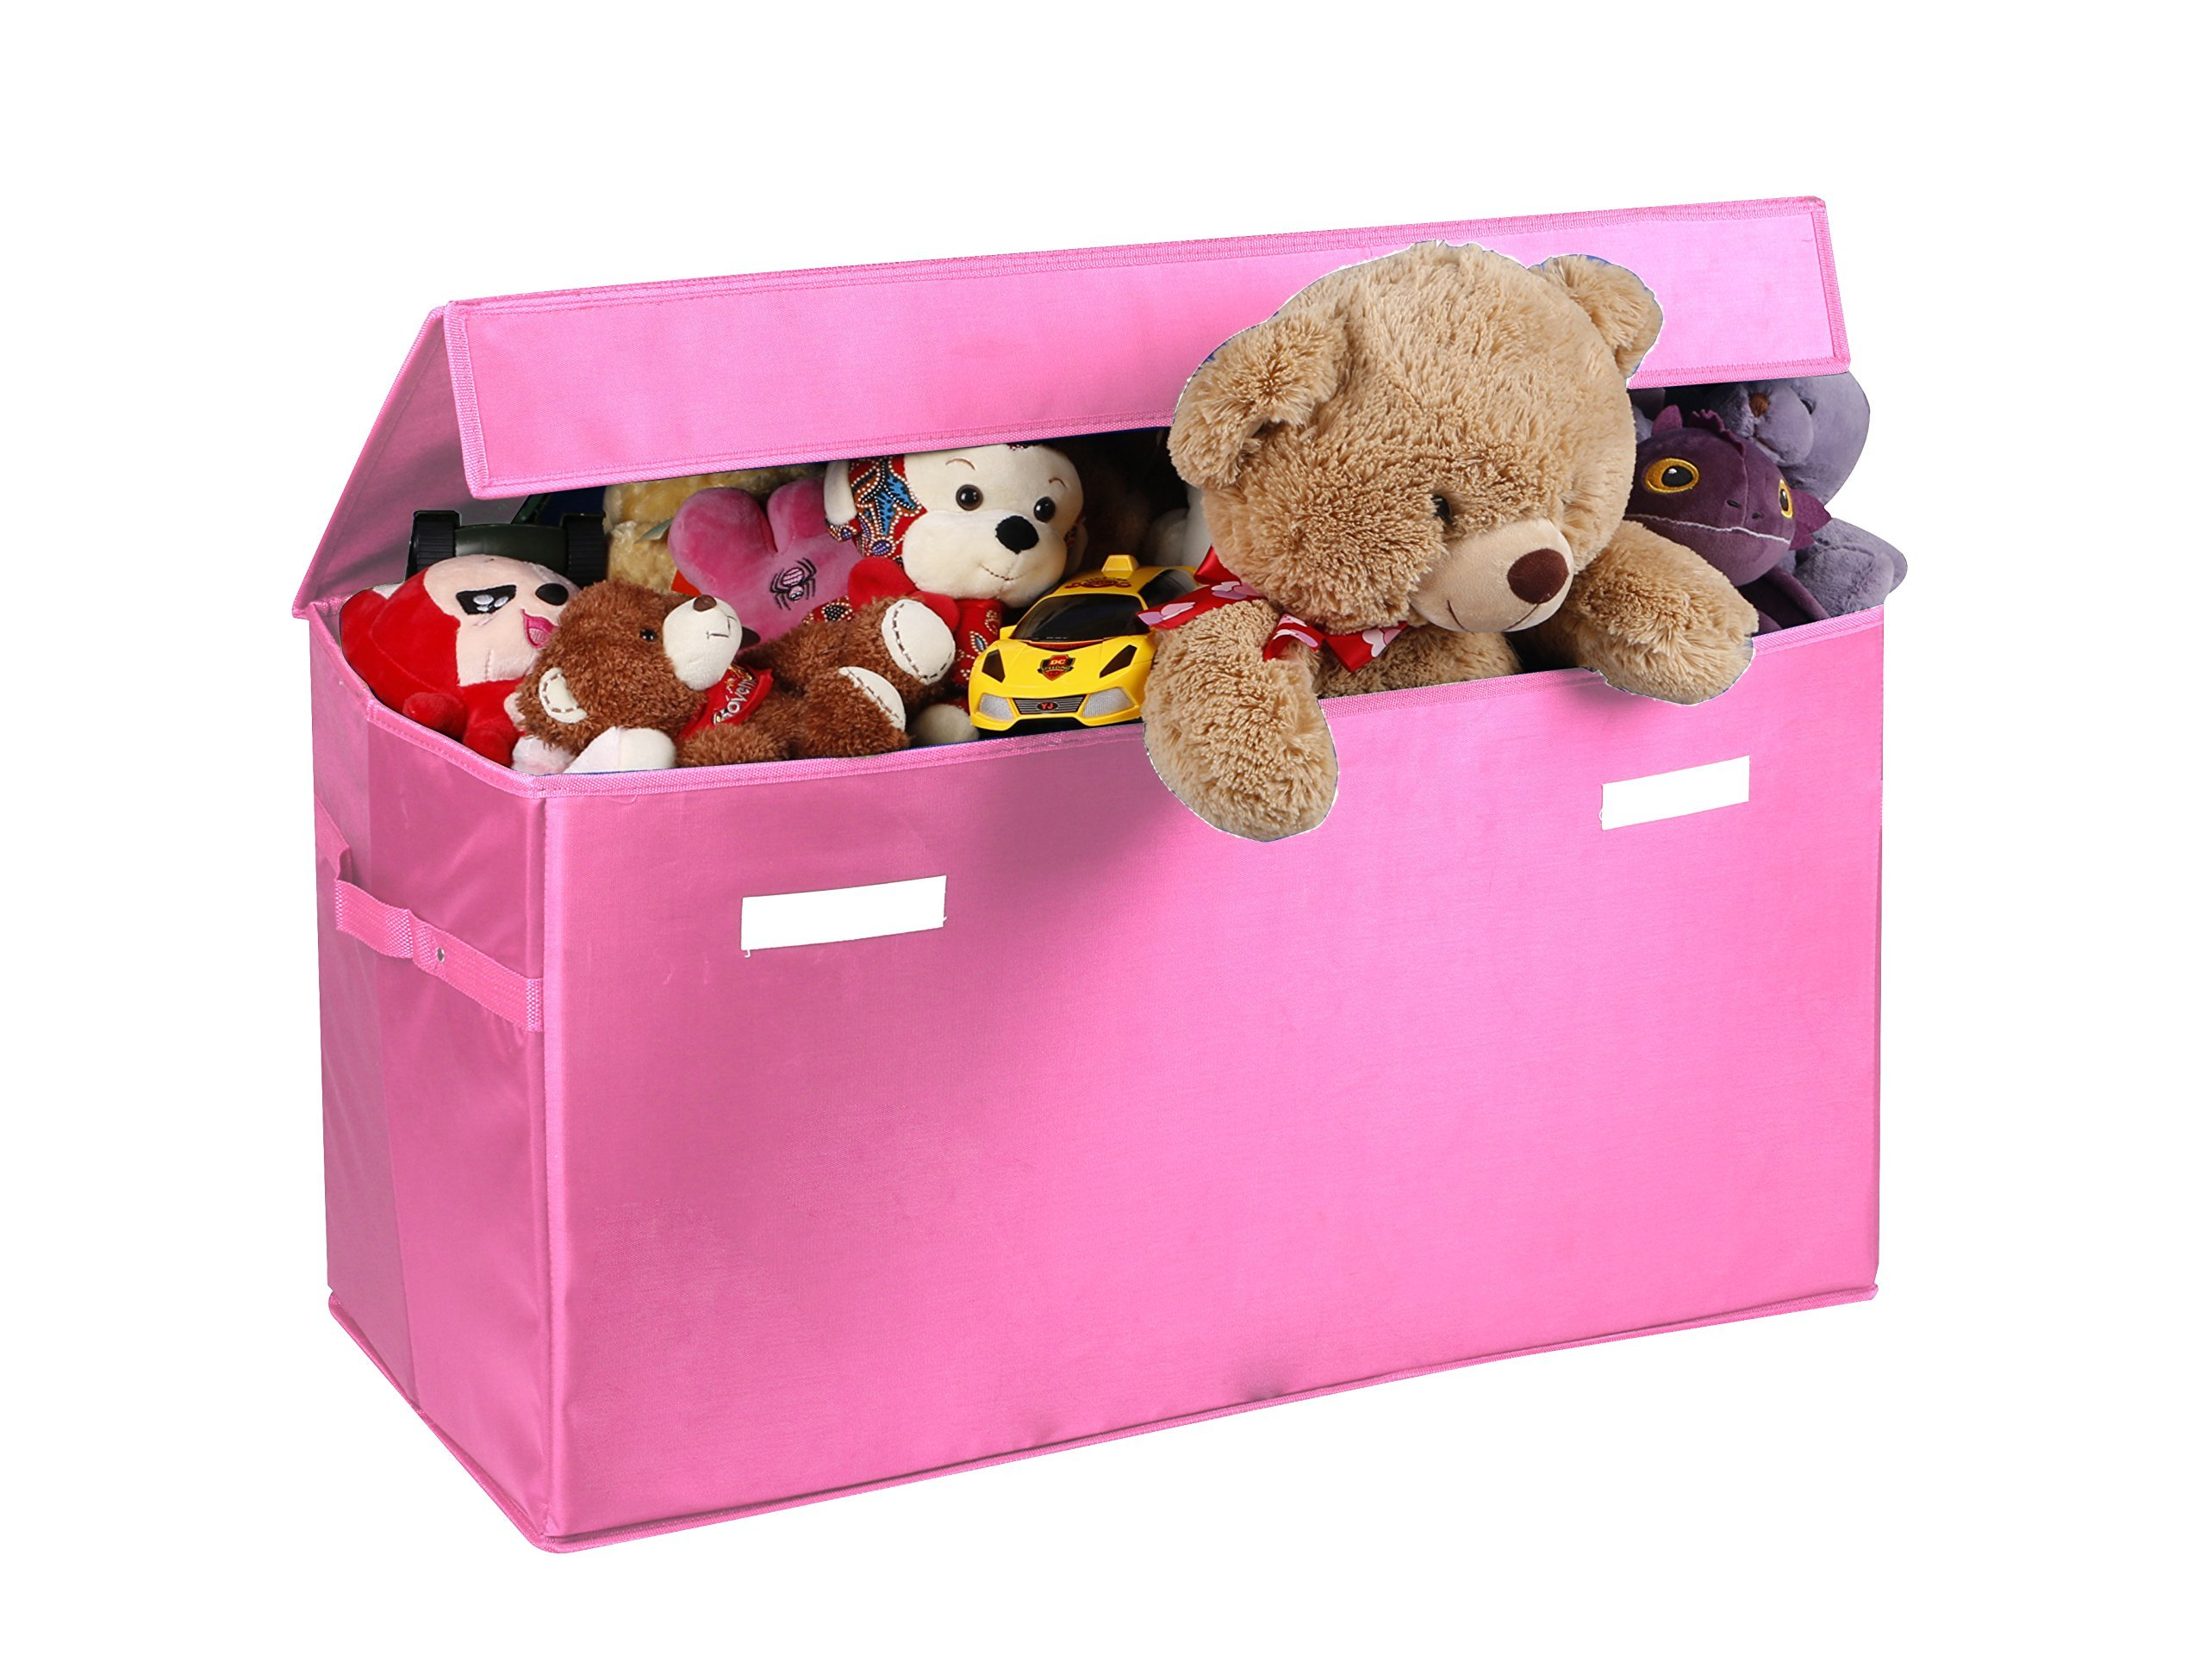 Princess Toys Box Storage Kids Girls Chest Bedroom Clothes: Amazon.com: Strong Collapsible Toy Chest Box [Largest